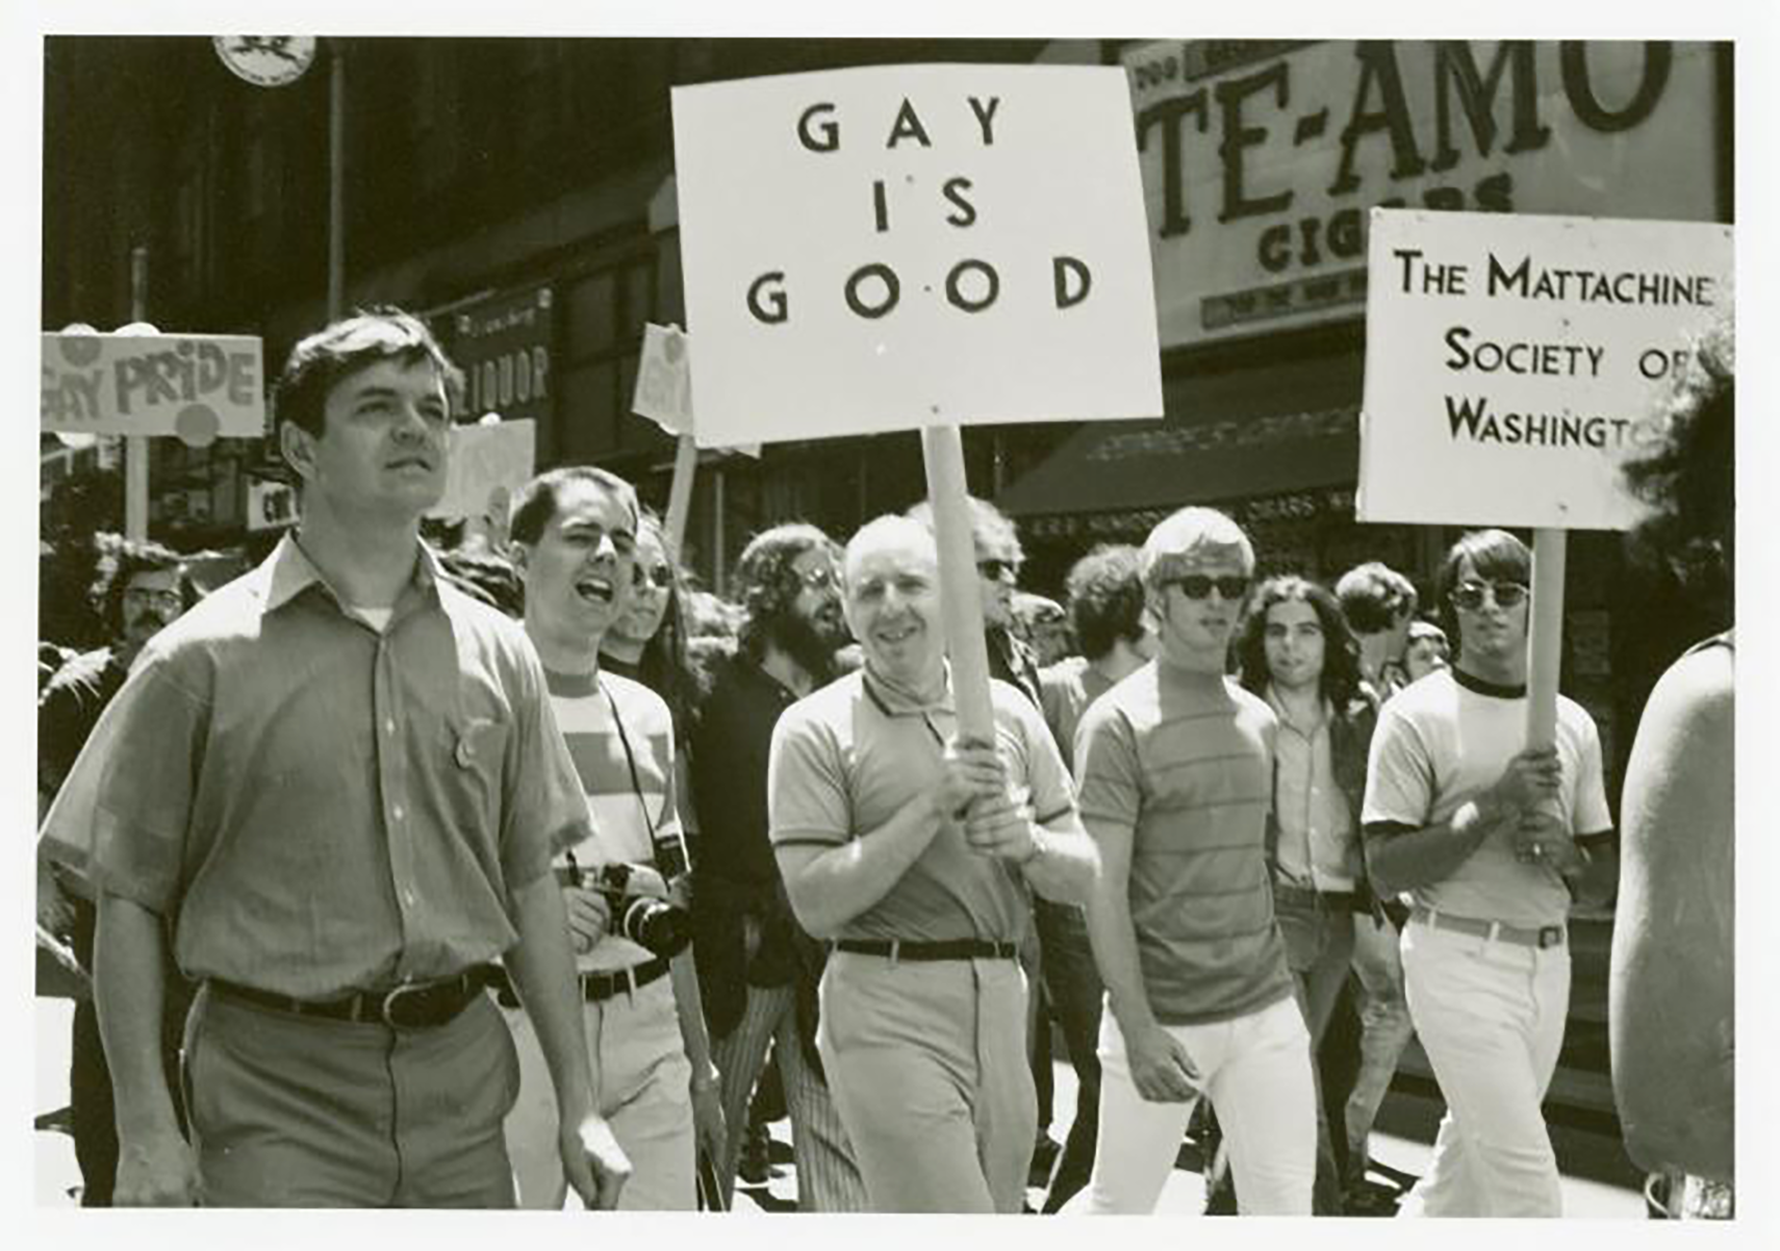 """A group of marchers, one holds a sign that reads """"GAY IS GOOD"""" another holds a sign that reads """"THE MATTACHINE SOCIETY OF WASHINGTON"""""""